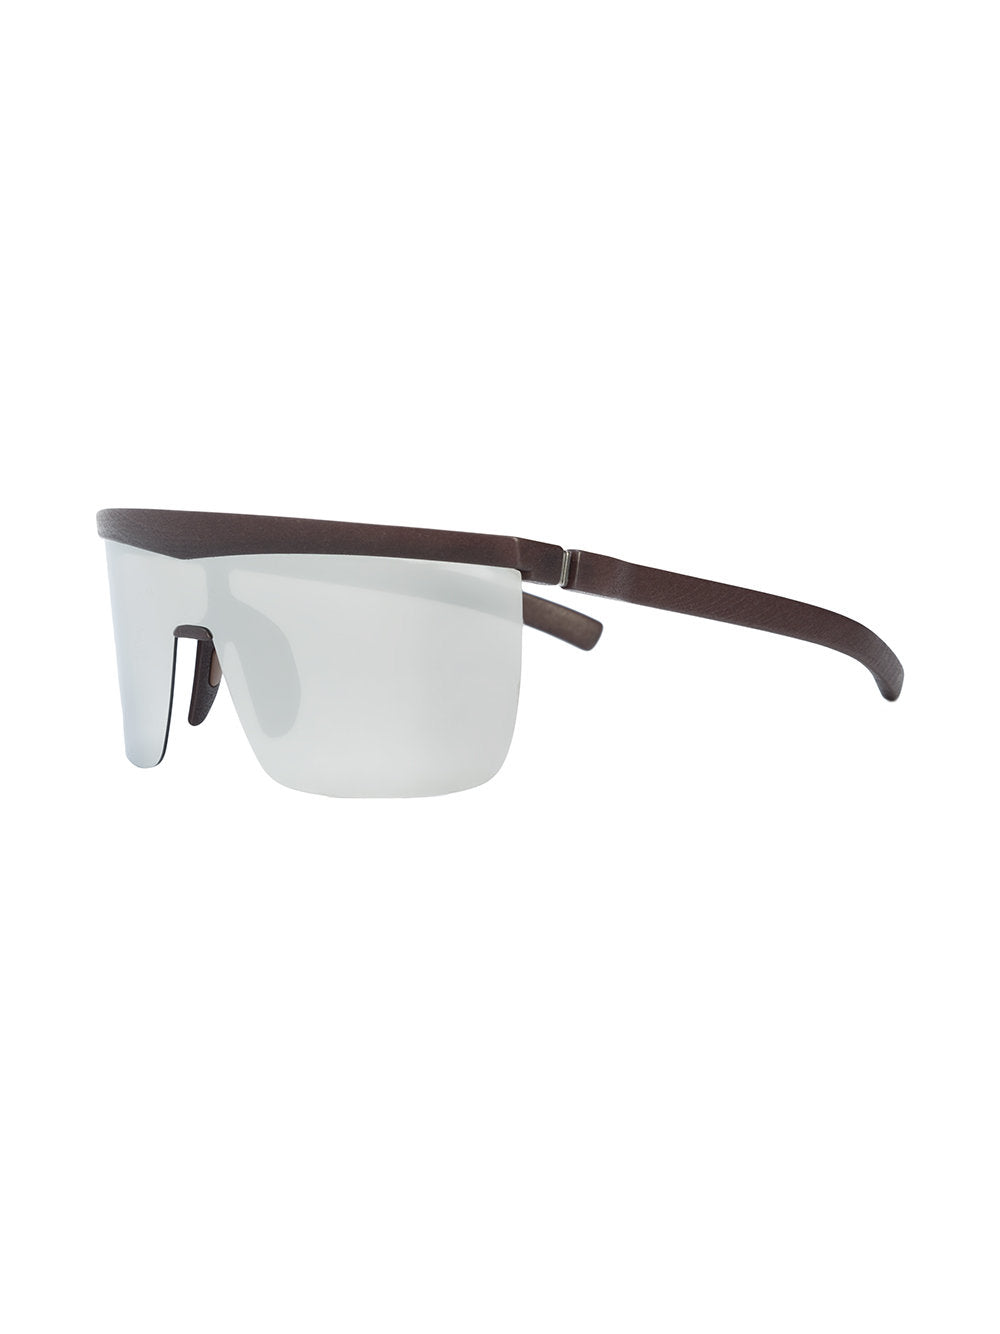 MYLON Trust Sunglasses